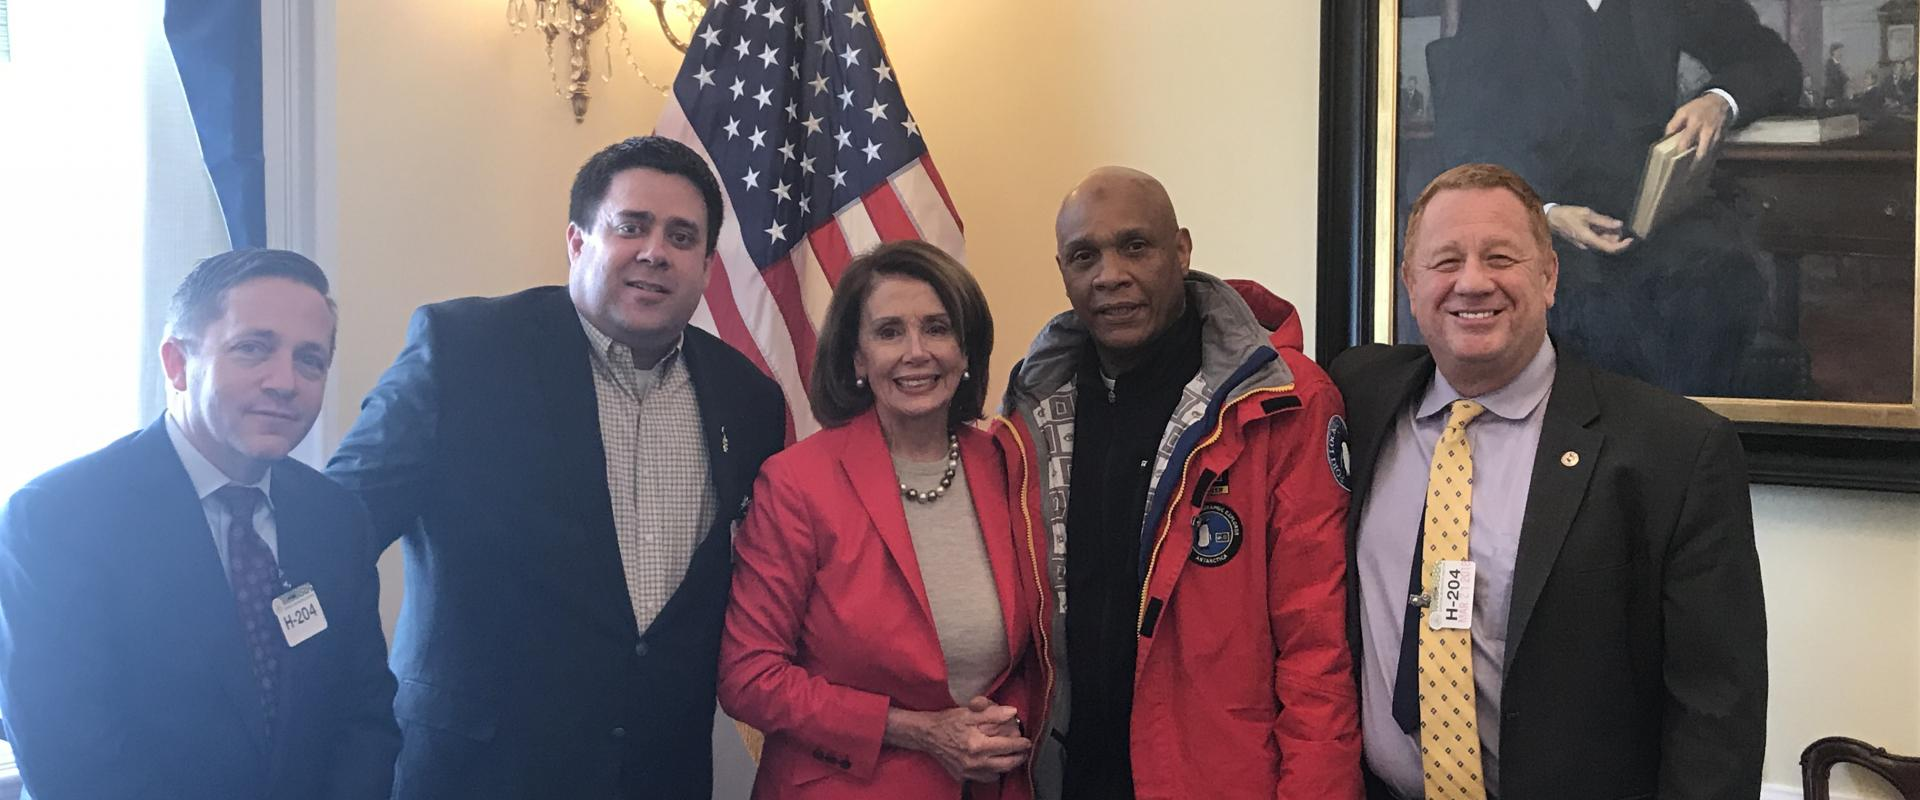 Congresswoman Pelosi joins San Franciscan Willie Adams, Secretary-Treasurer of the International Longshore & Warehouse Union (ILWU), and ILWU leaders to discuss ensuring fair wages and a fair process for the National Park Service Alcatraz concession, refo